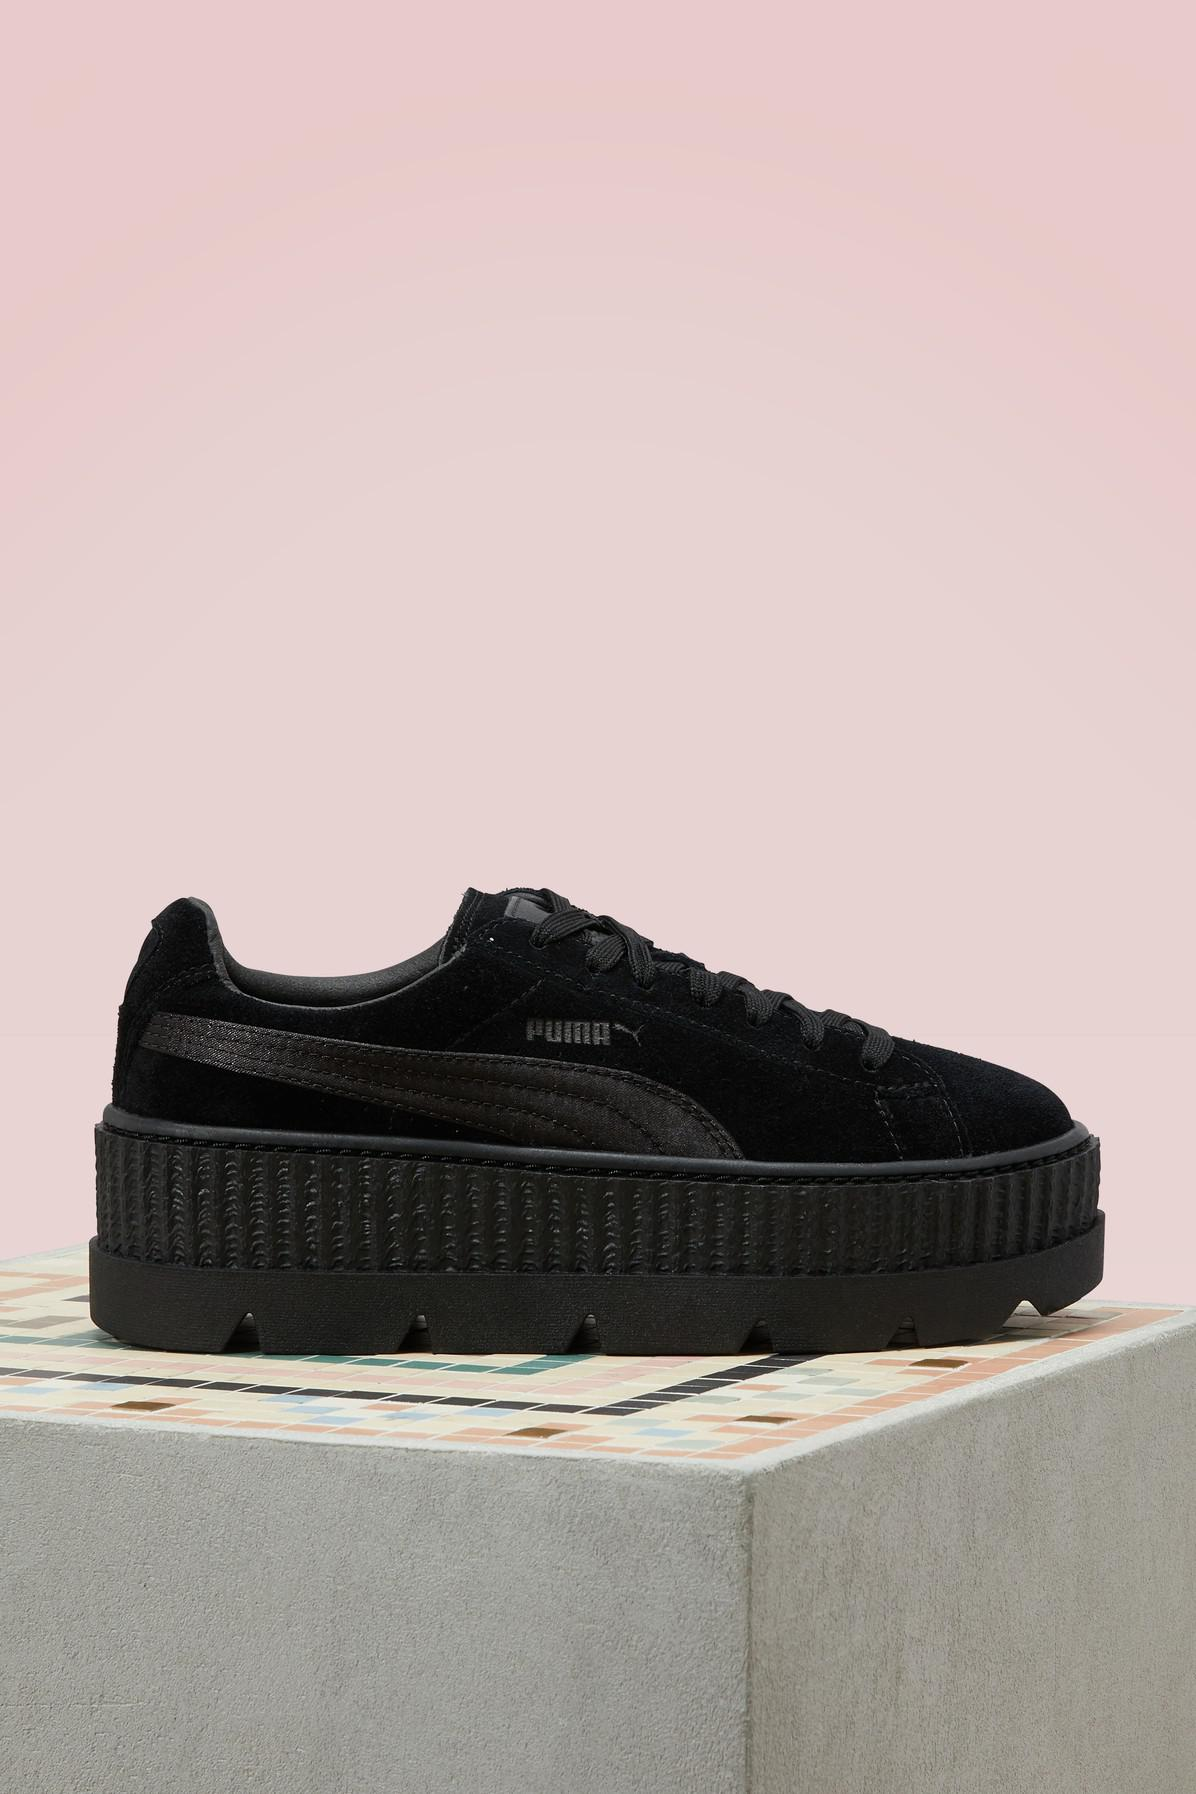 Lyst - Puma Suede Cleated Creepers in Black dc05a279a